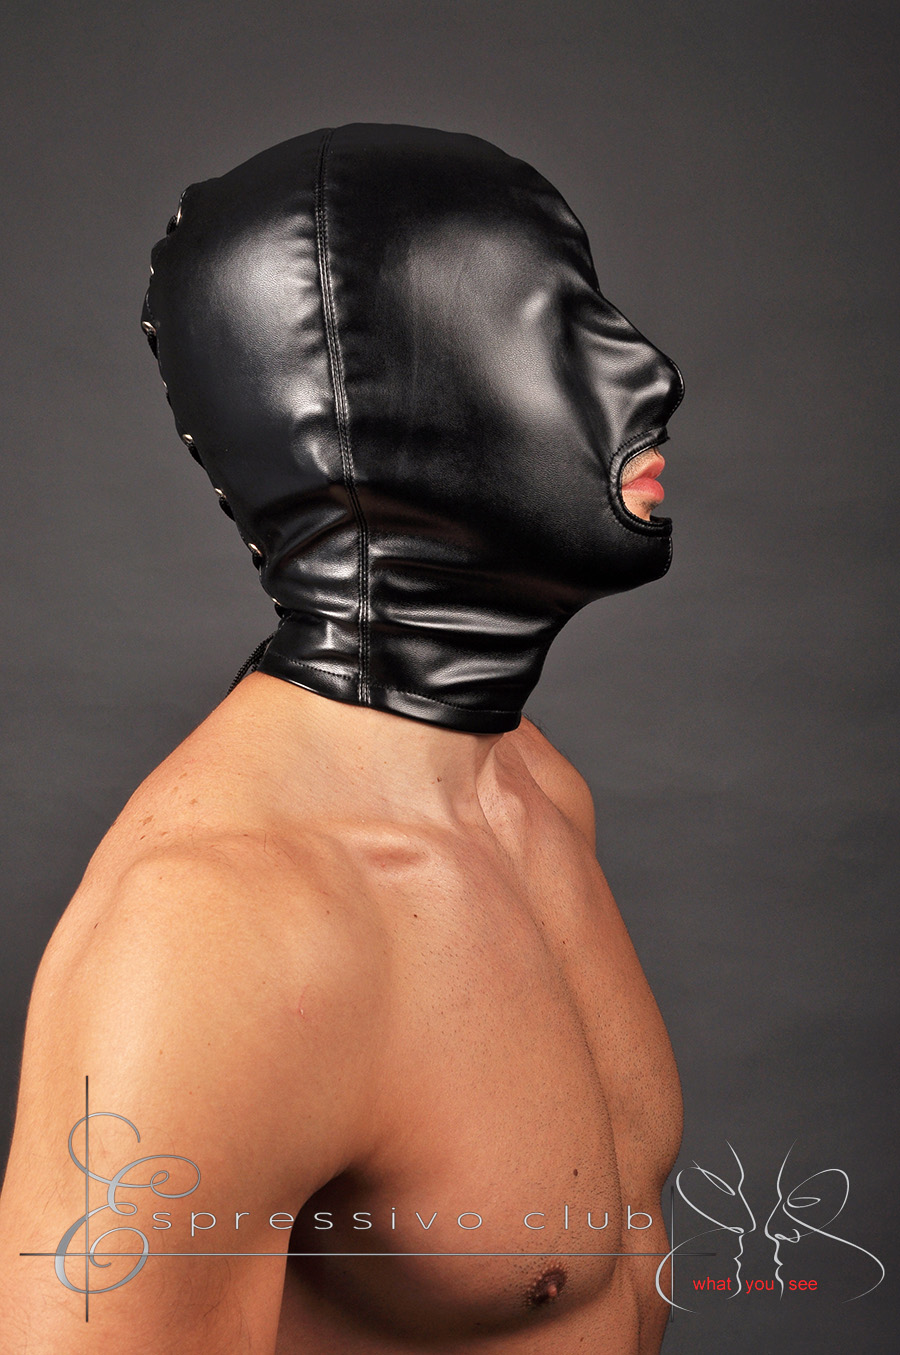 Mask leather sex movies